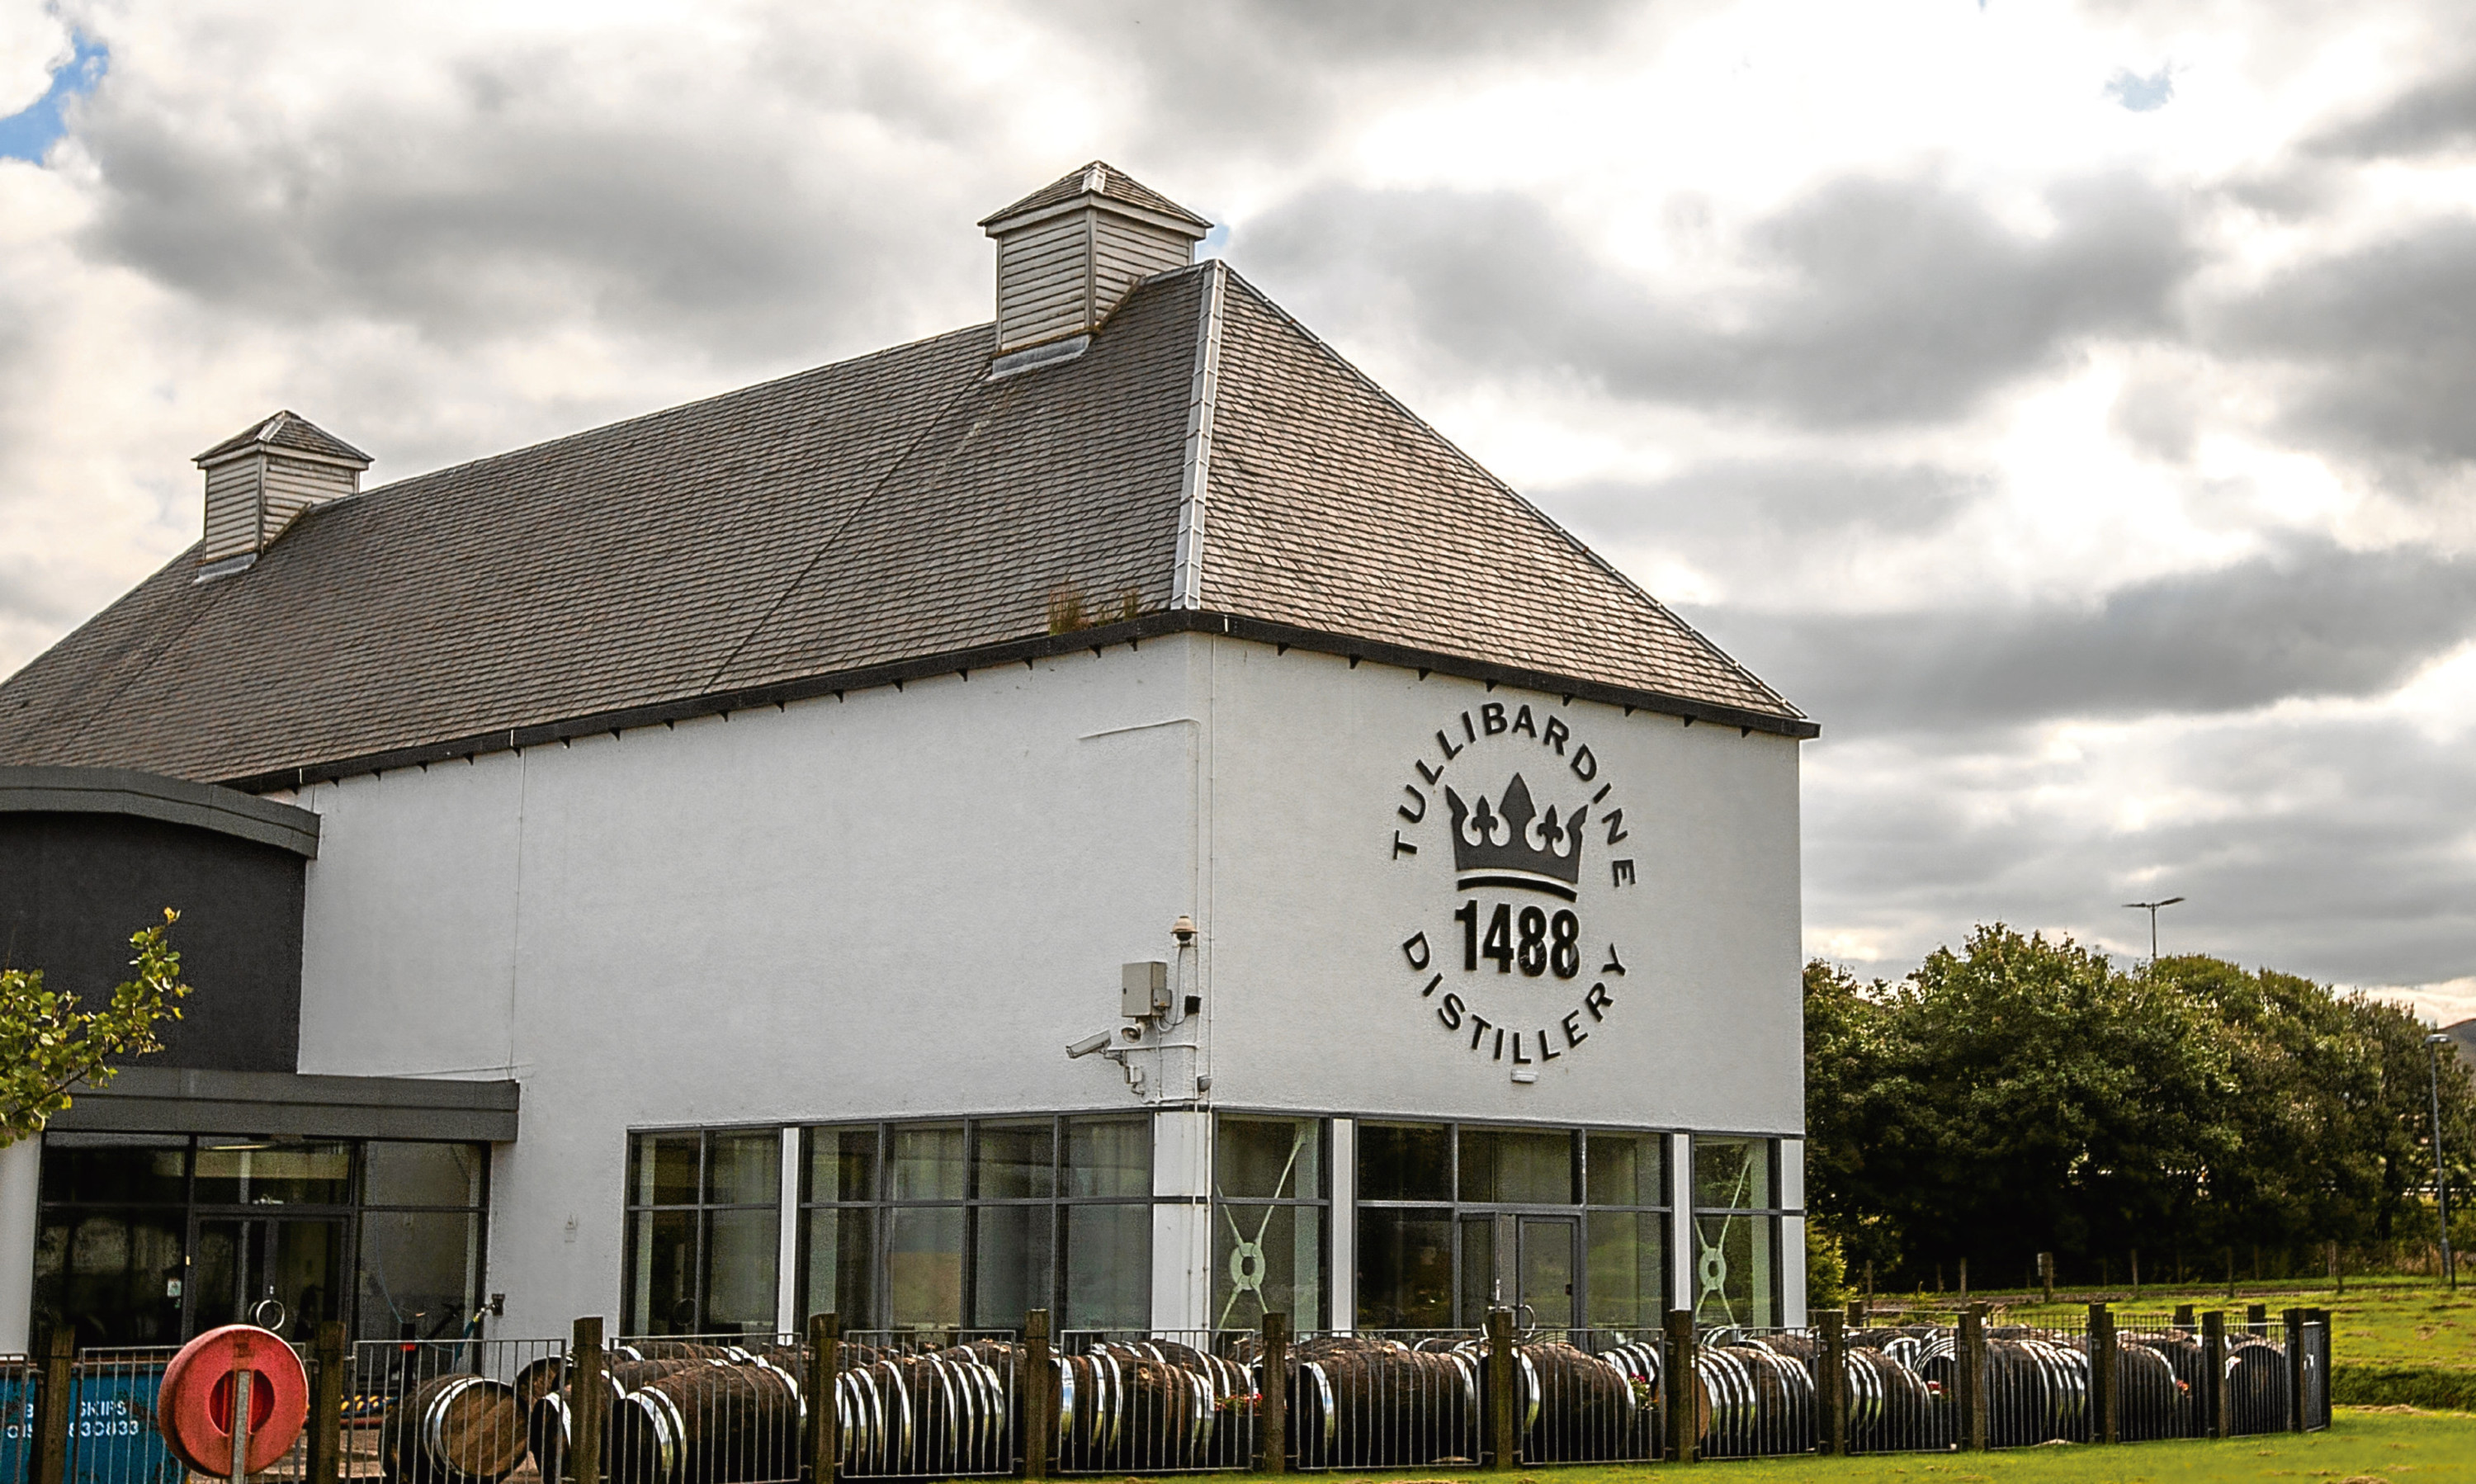 The Tullibardine distillery has a shop and offers tours.